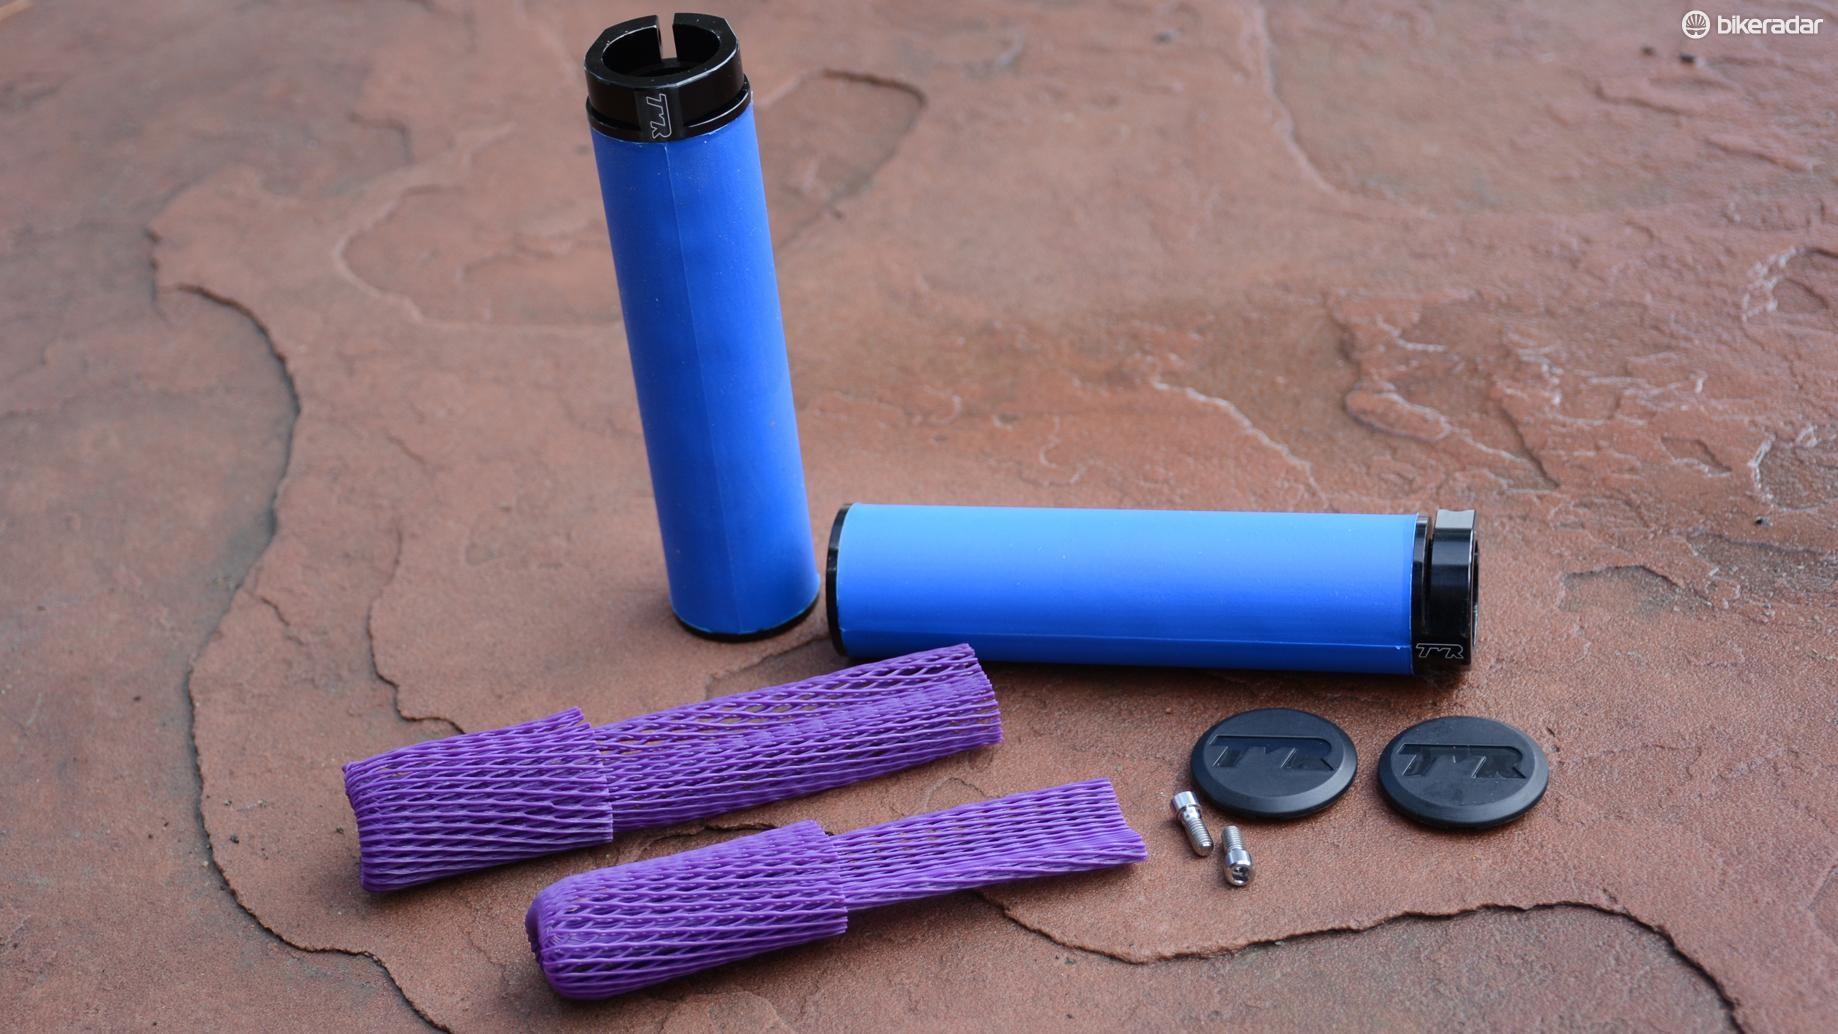 The kit includes the lock-on grips, bar end caps, titanium screws and mesh for adding texture to the grips